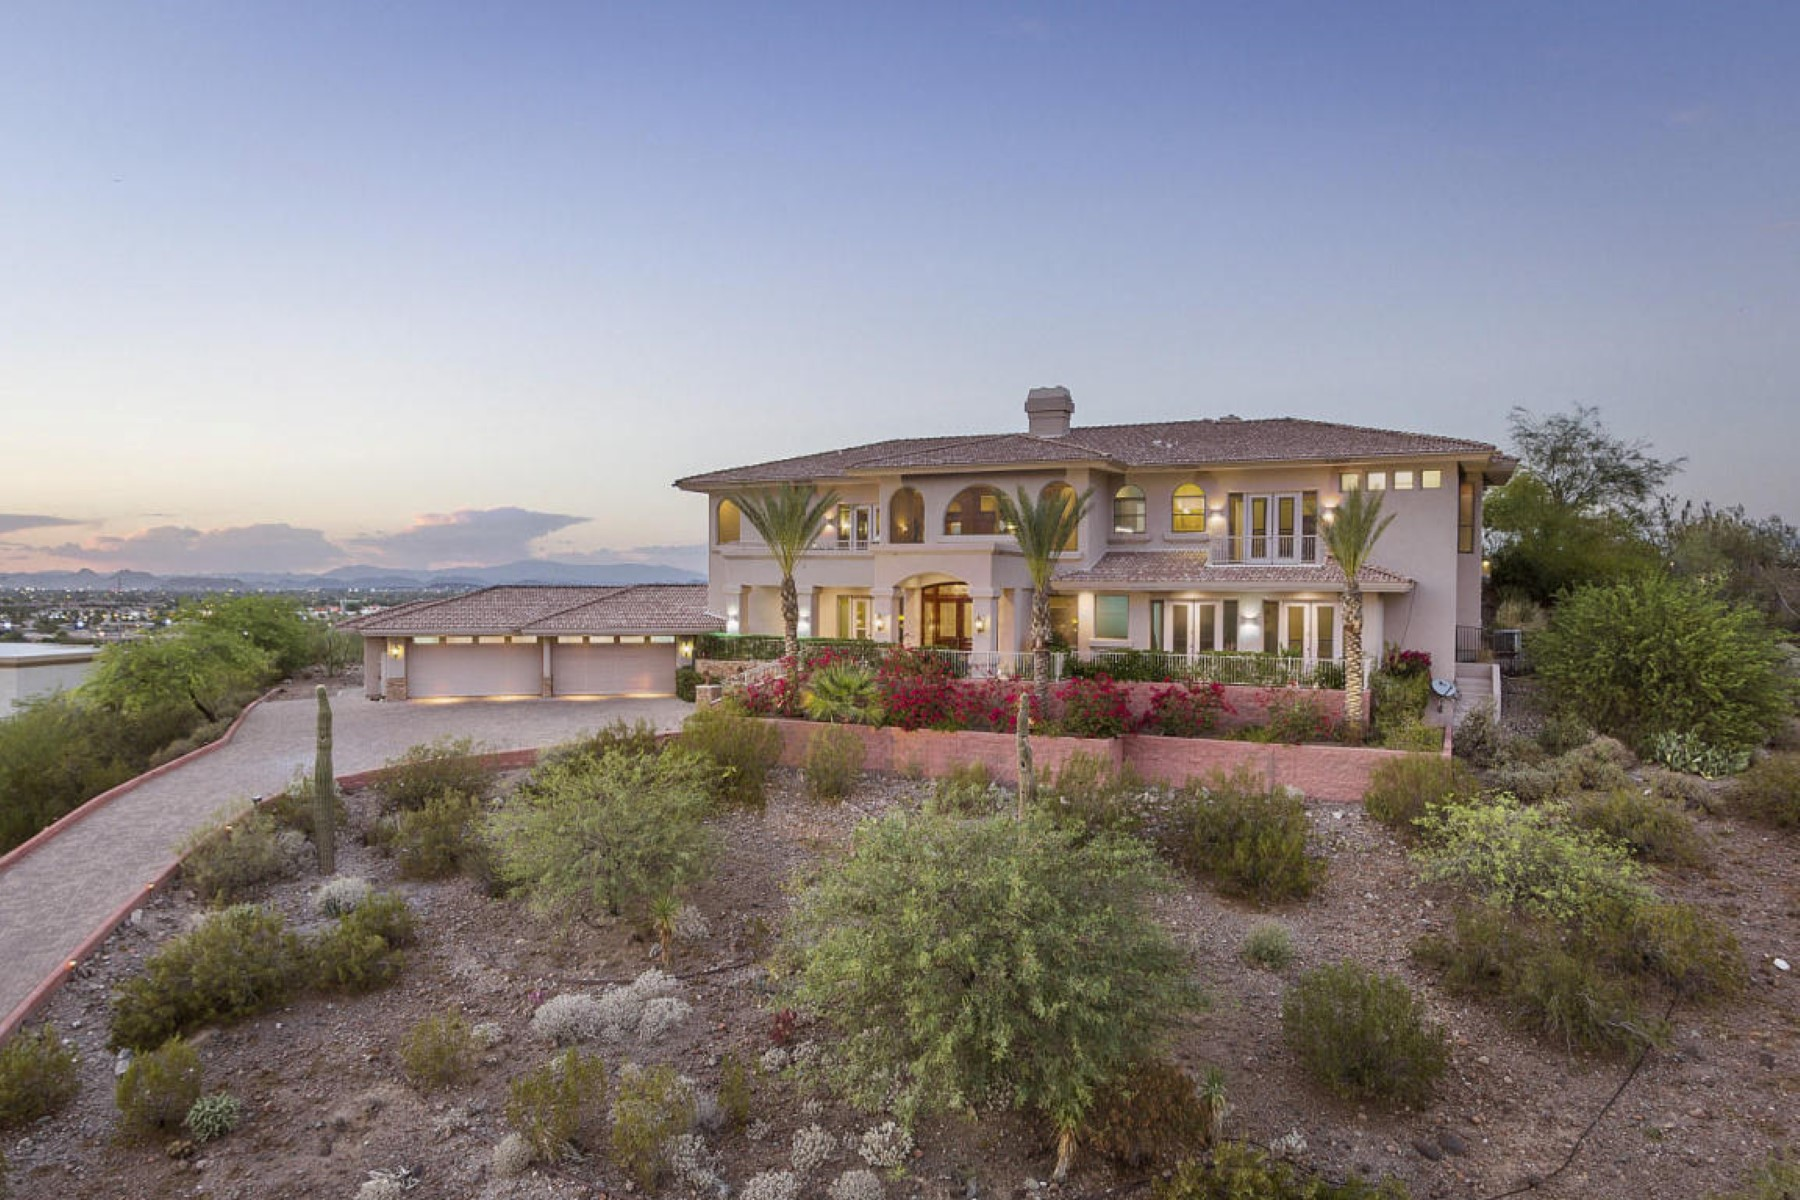 Single Family Home for Sale at Stunning Hilltop Estate with 360 Views On 1.11 Acres 920 E Waltann Lane Phoenix, Arizona 85022 United States